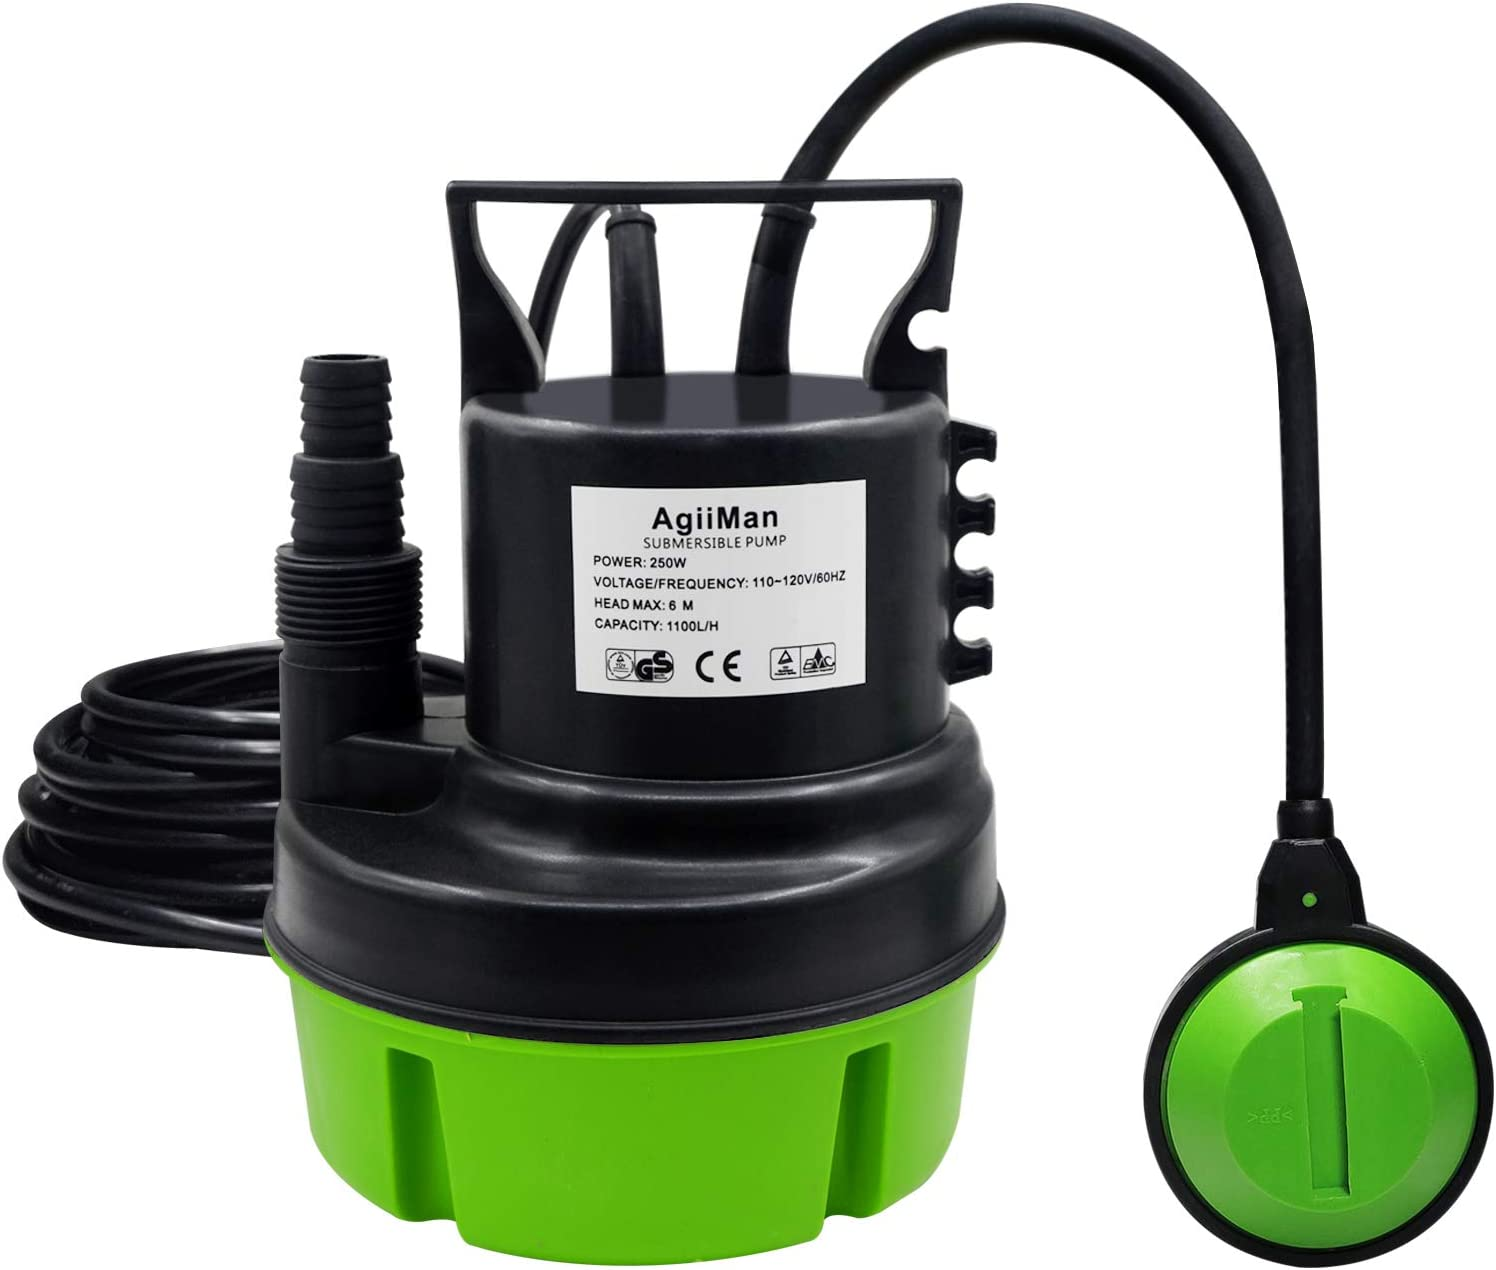 AgiiMan Sump Pump - 1/3HP 250W 1100GPH Submersible Clean Water Pump, Swimming Pool Hot Tub Drain, Float Switch and 16ft Cable